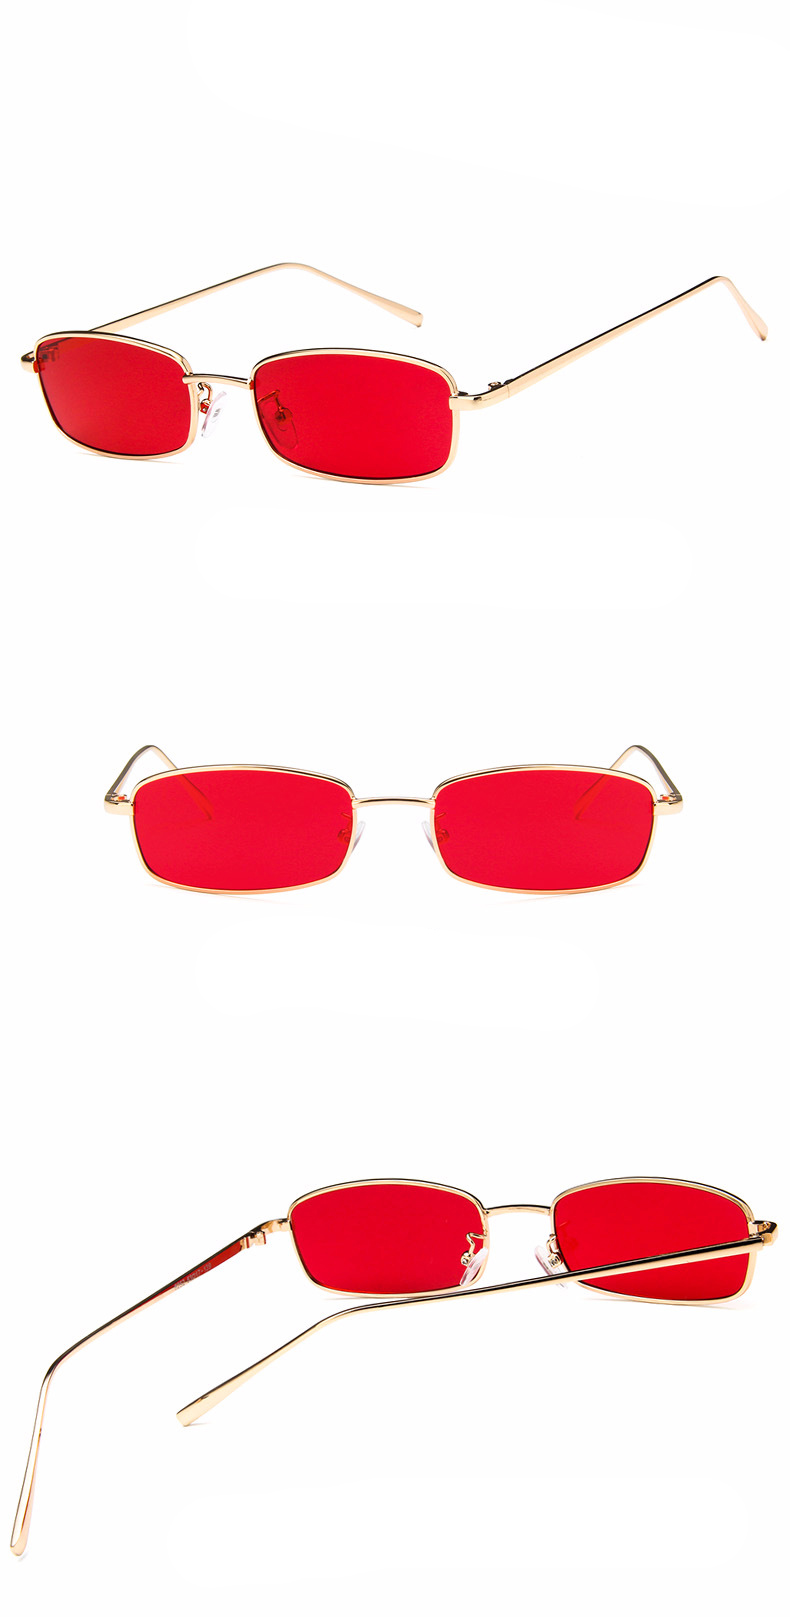 b745e9769a oversized sunglasses are necessary for us in sunning days especially hot  summer. The reason why best sunglasses for men are so popular is that they  are not ...